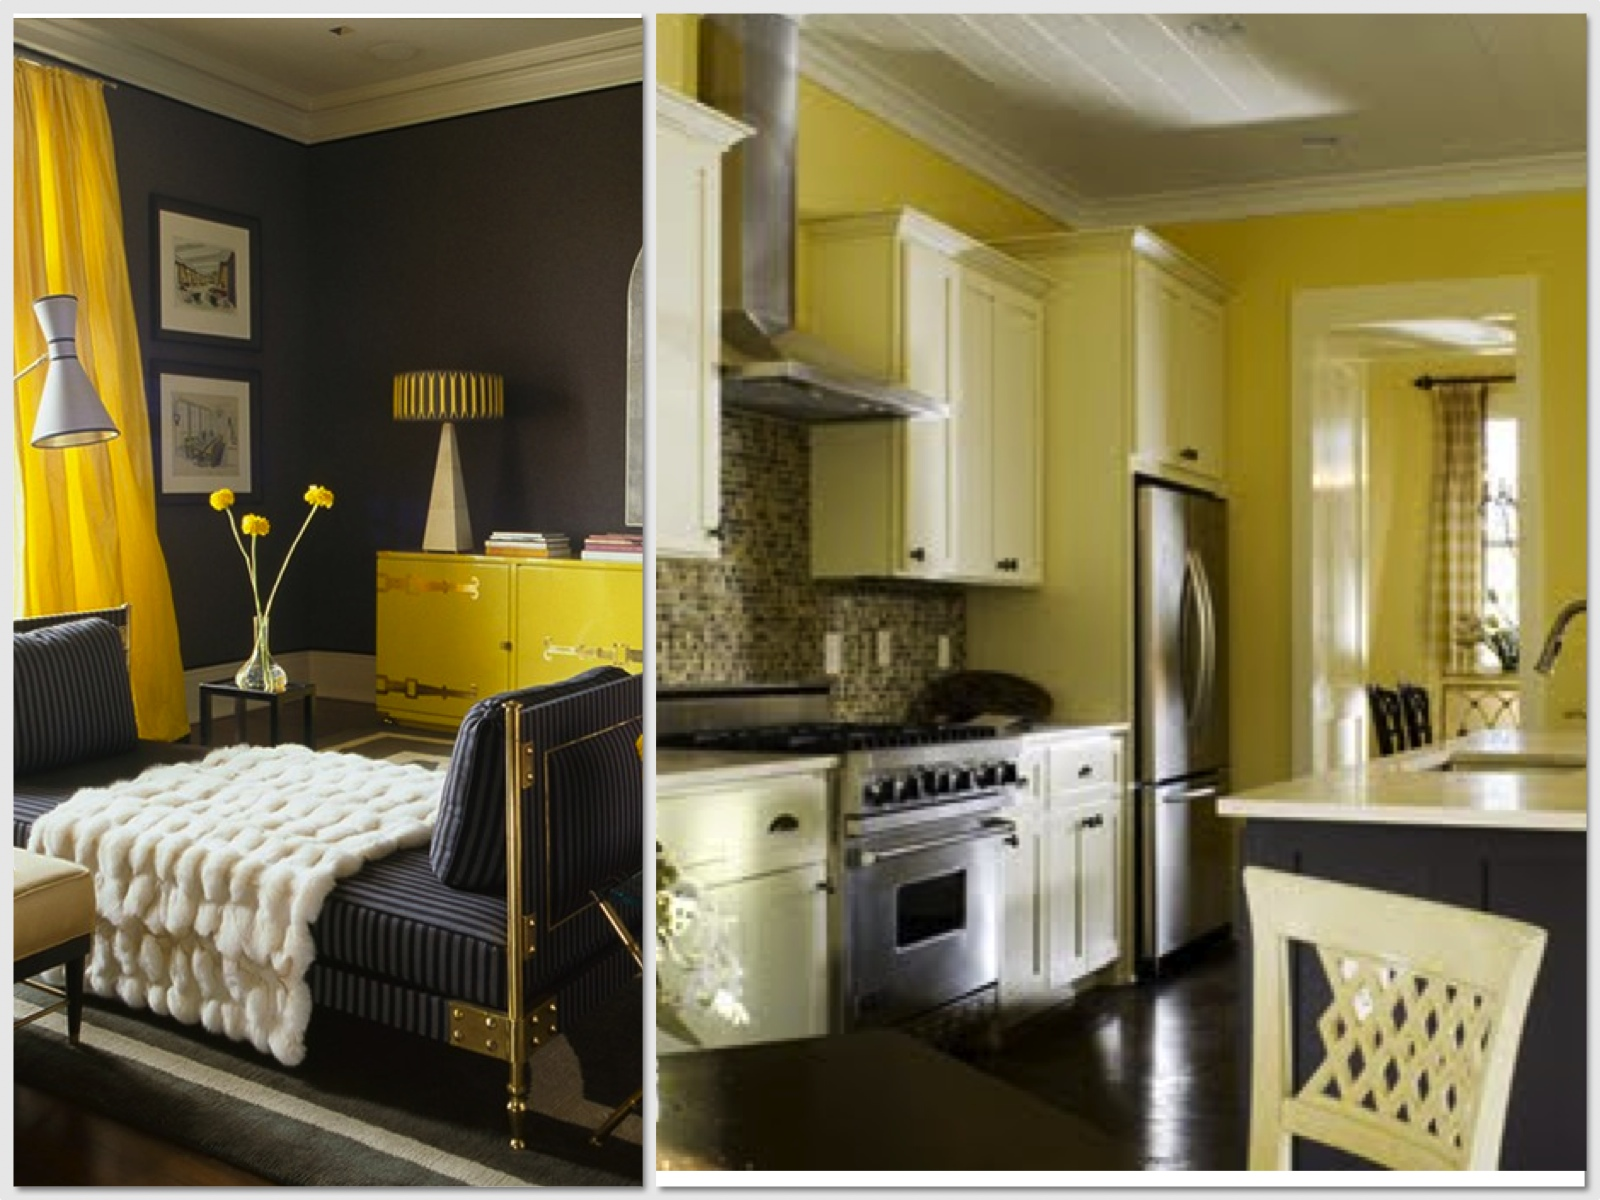 Bedroom Ideas Yellow And Gray yellow and gray bedroom decorating ideas. perfect gray and yellow